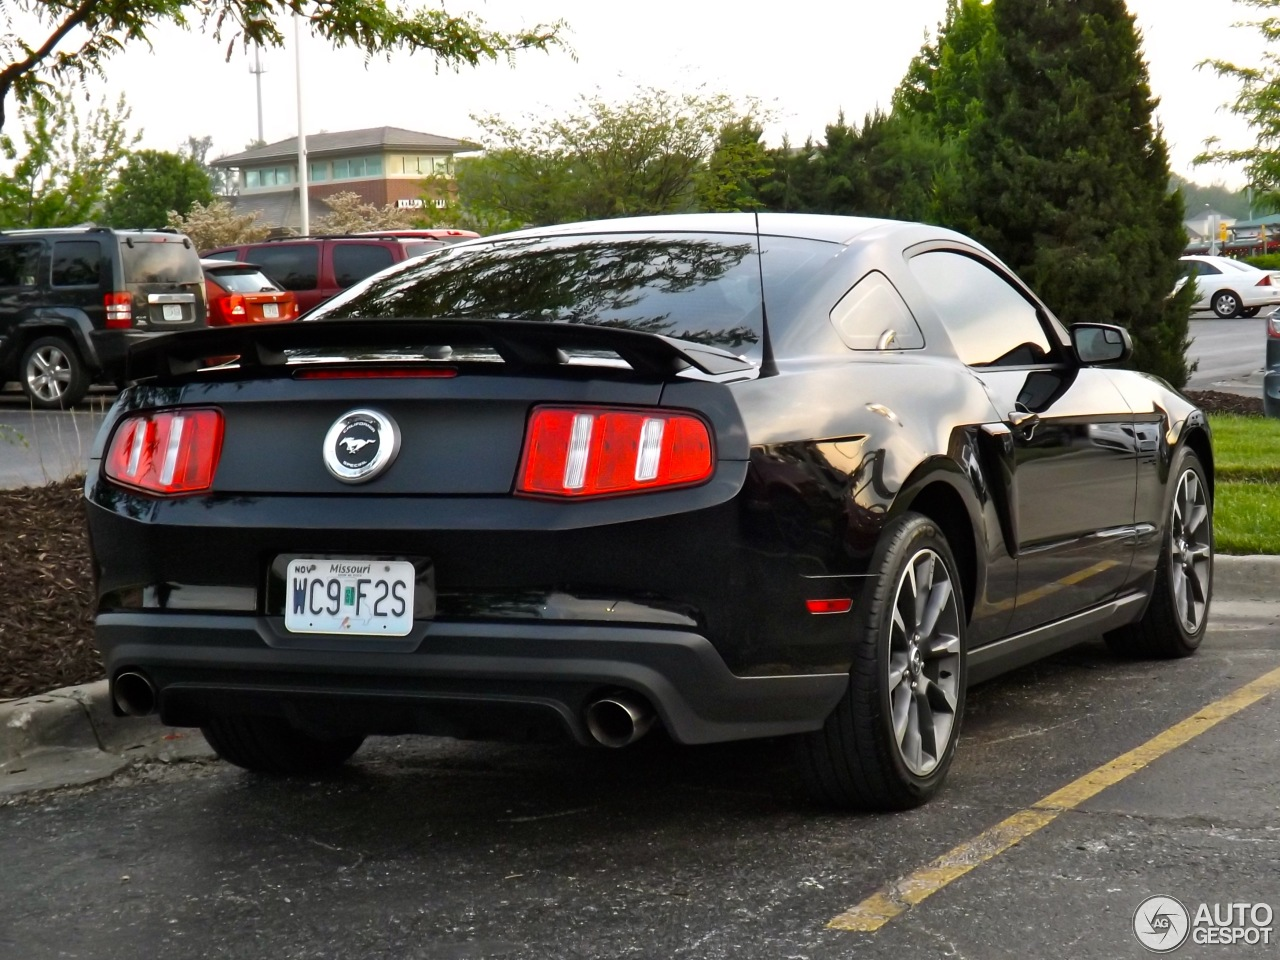 2010 Ford Mustang For Sale >> Ford Mustang GT 2010 California Special - 19 May 2013 - Autogespot